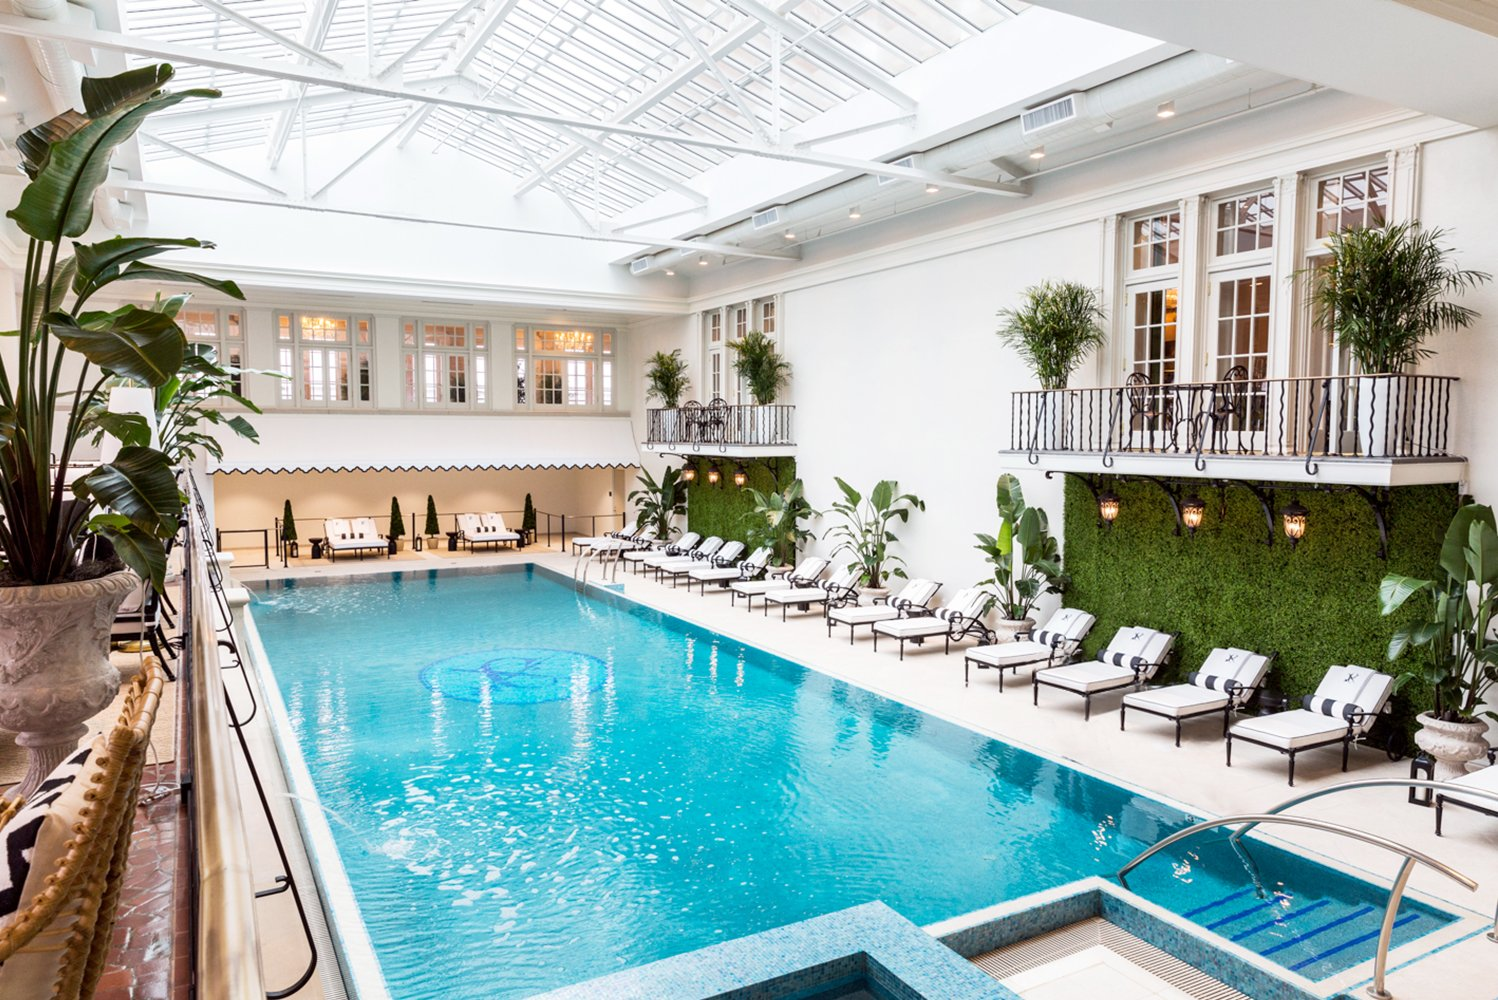 """The indoor salt water pool and glass rotunda once known as """"The Plunge"""" were also renovated. Photo credit: Ashley Lester Photo, courtesy of The Cavalier Hotel"""